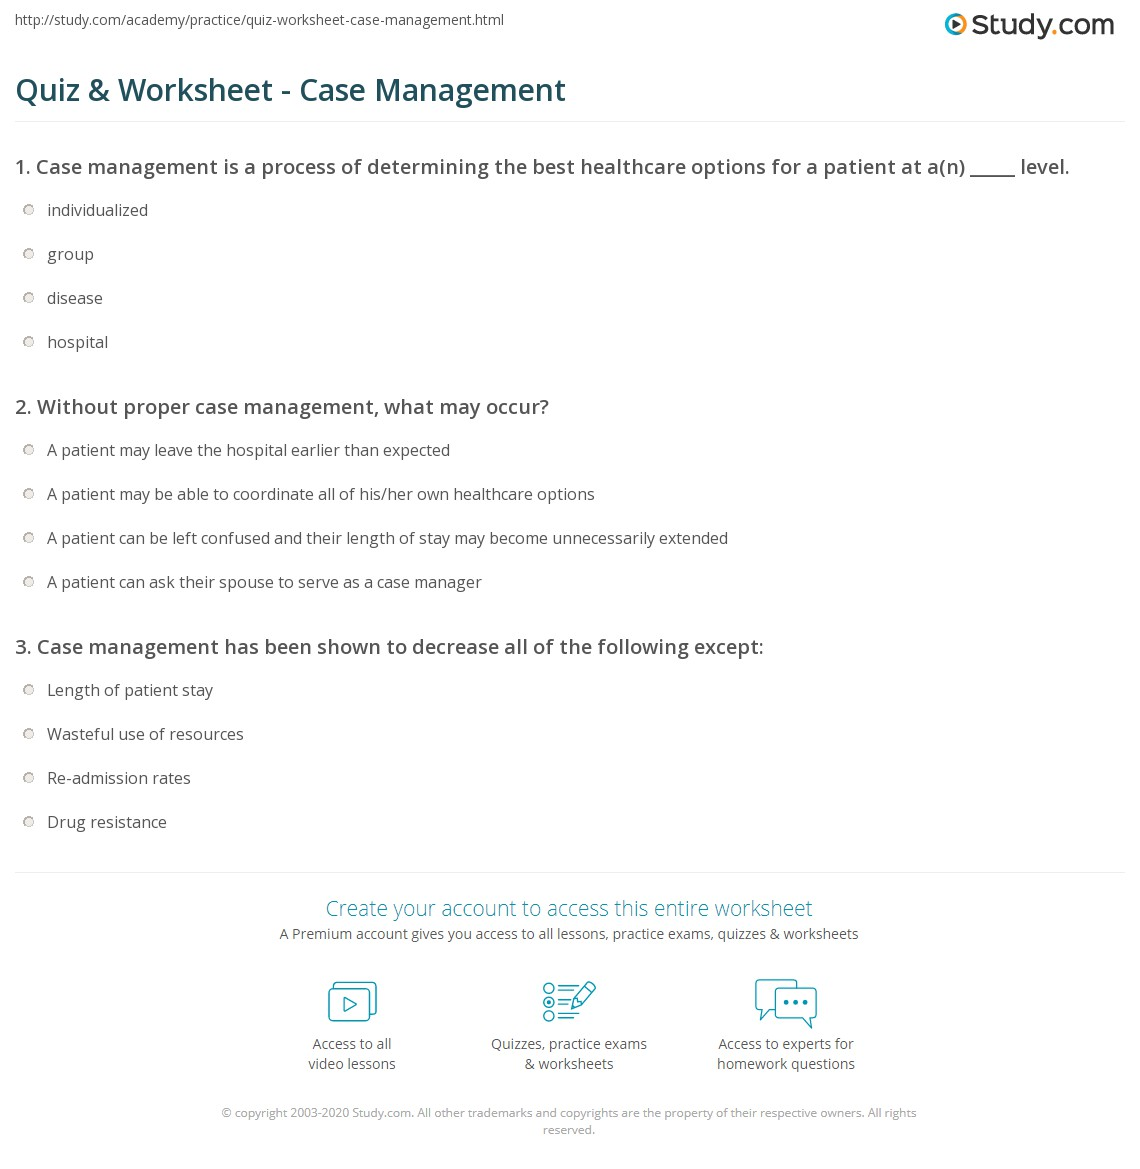 What Is Case Management? - Definition & Role in Healthcare